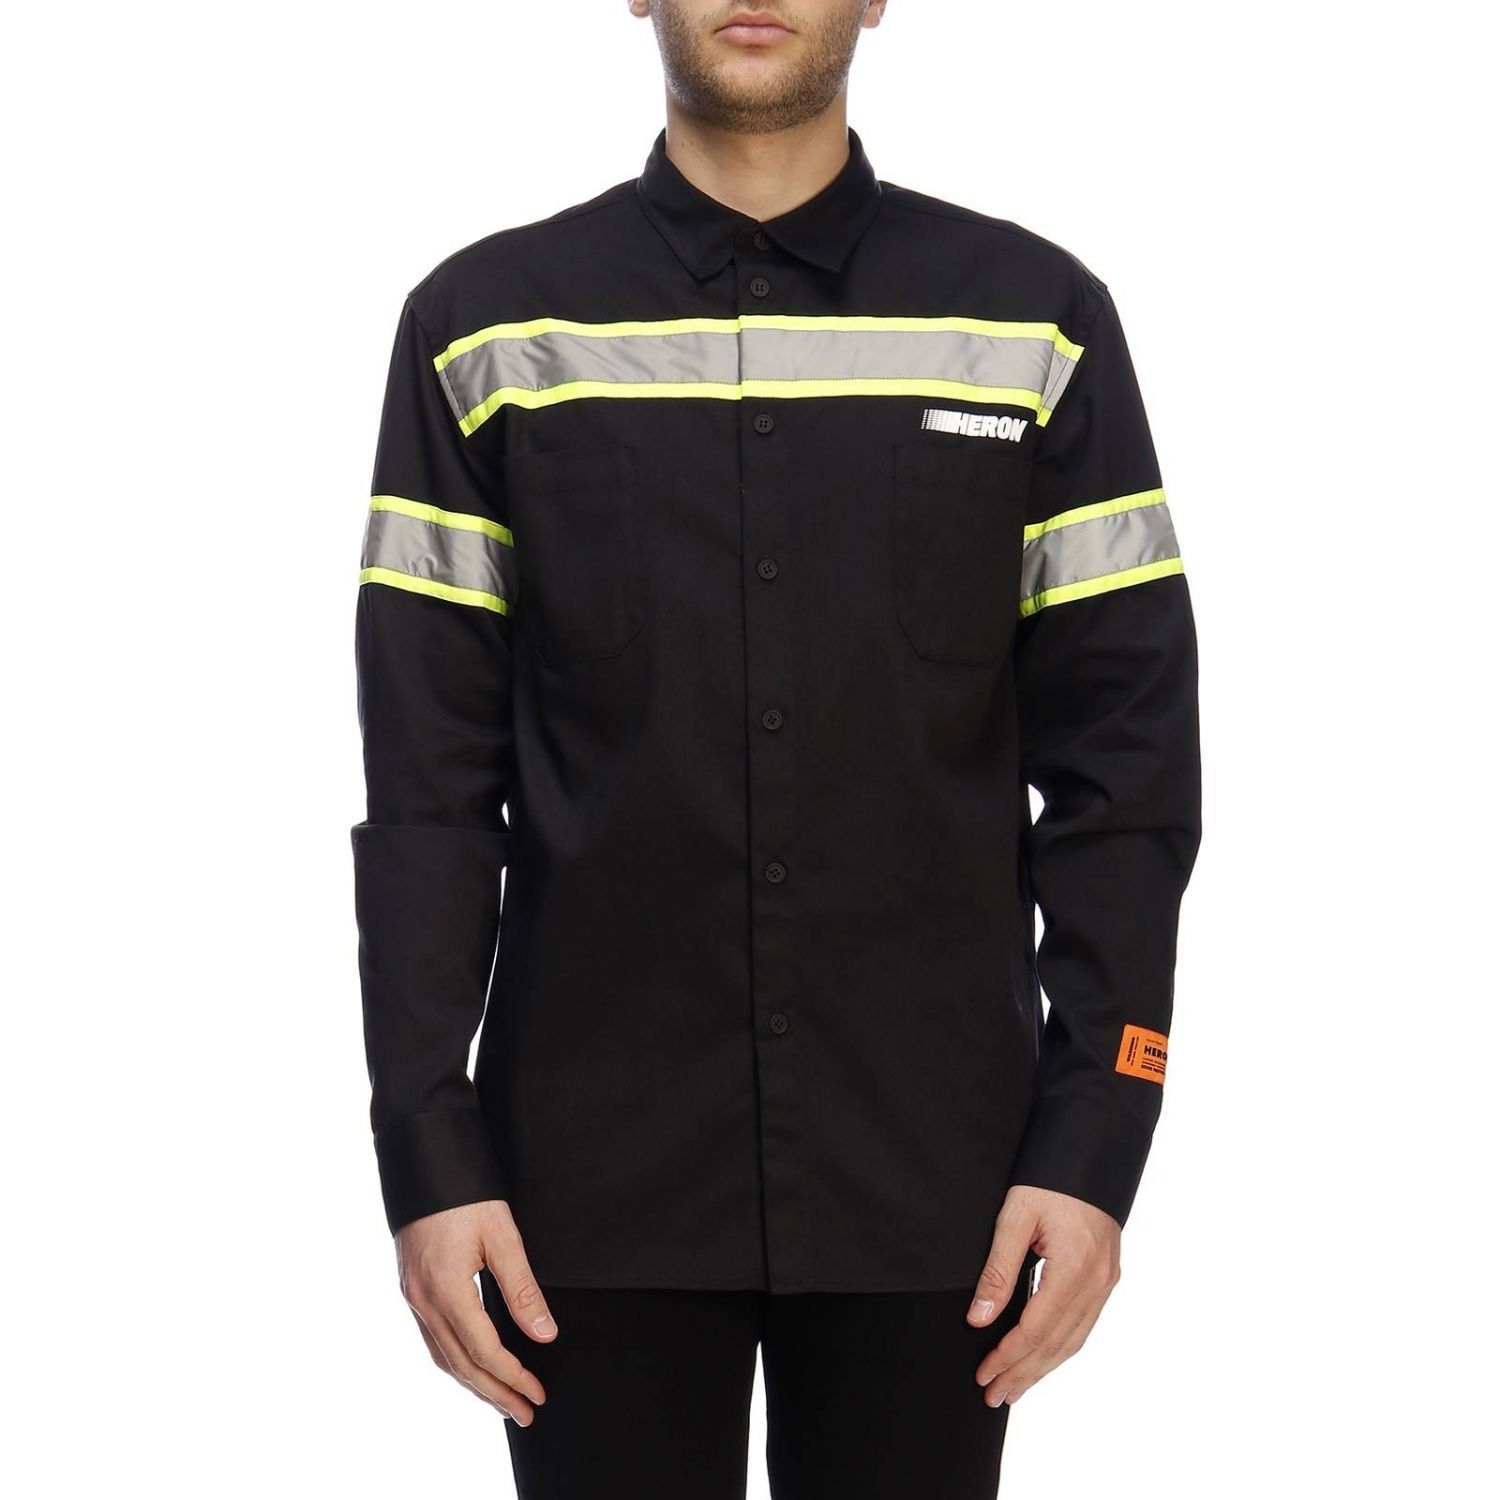 Shirt men Heron Preston black 1